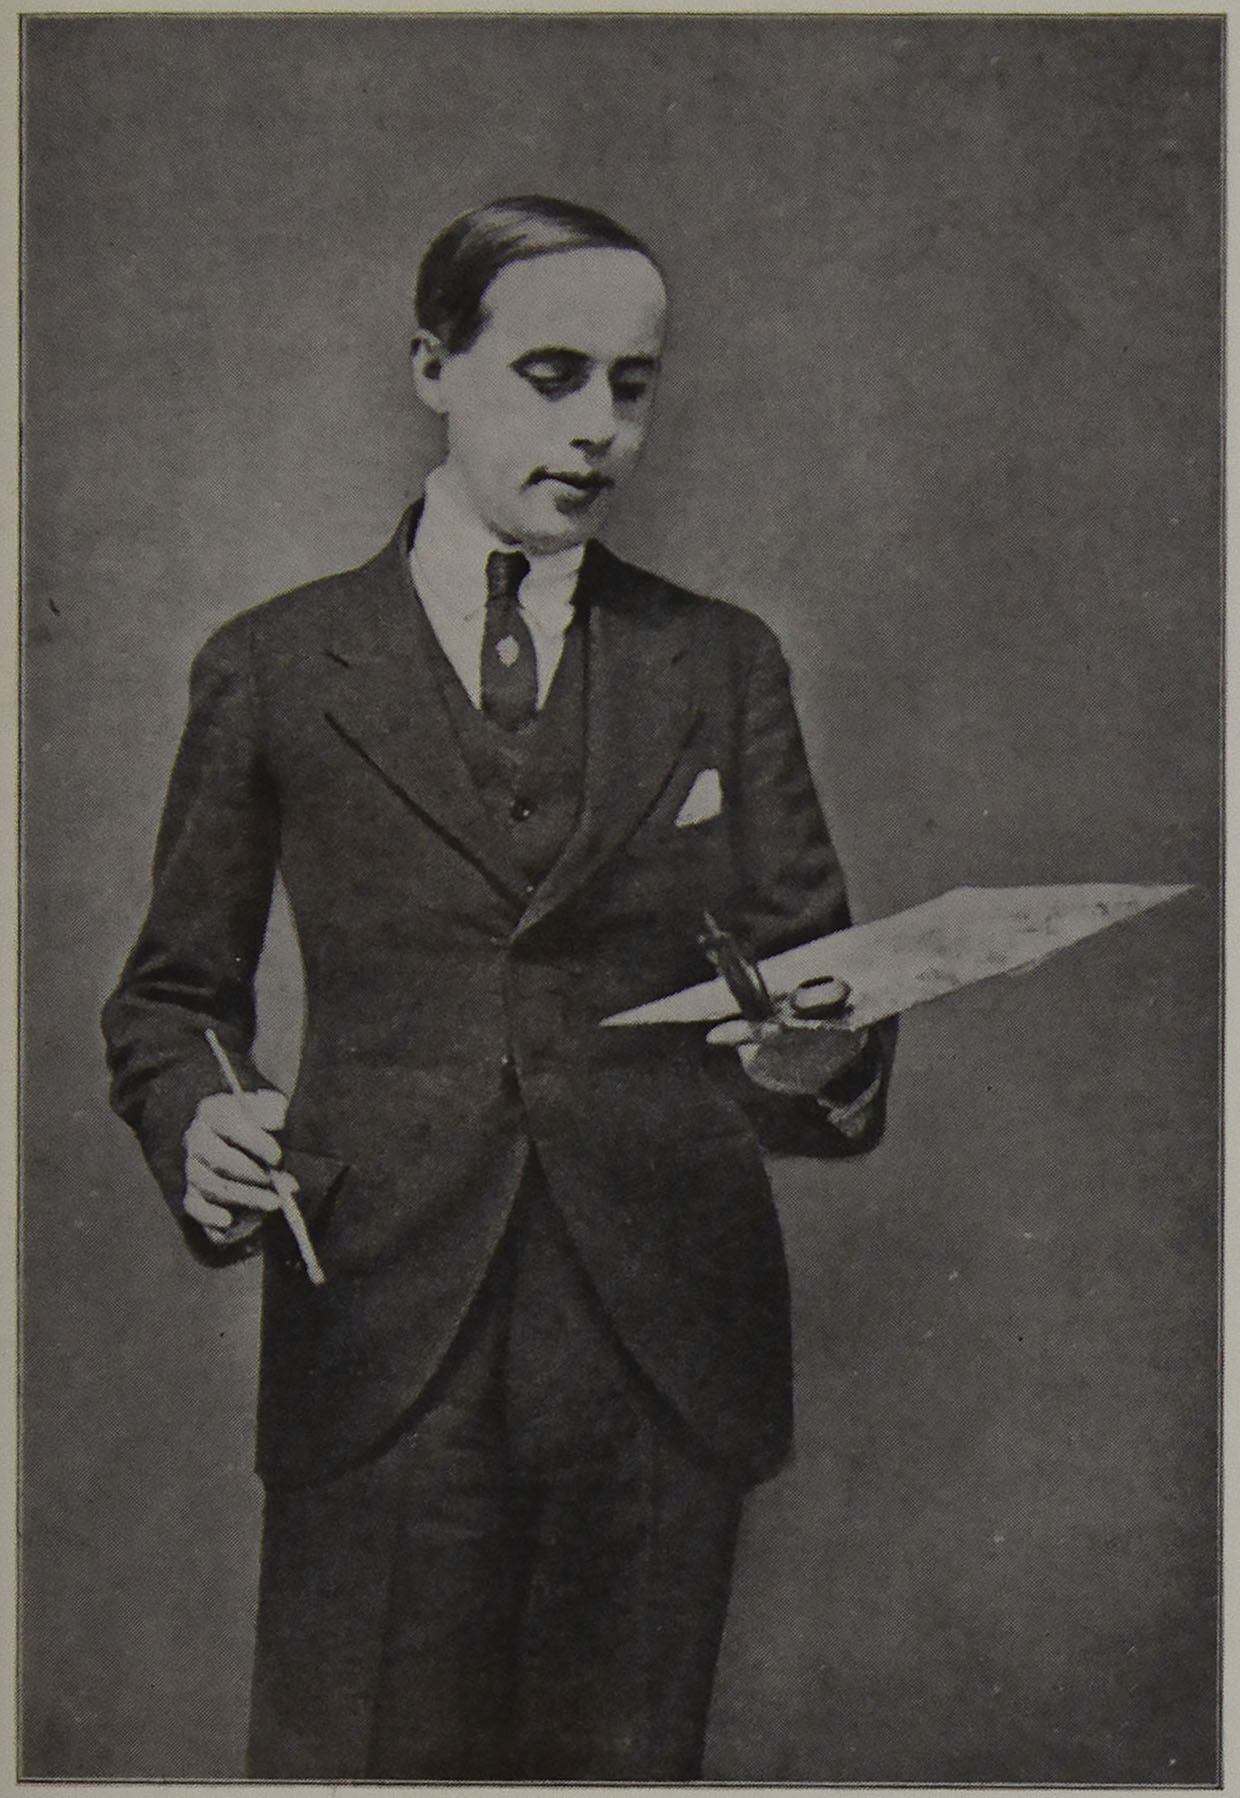 Einar Wegener is dressed in                      a suit and holds painting materials.